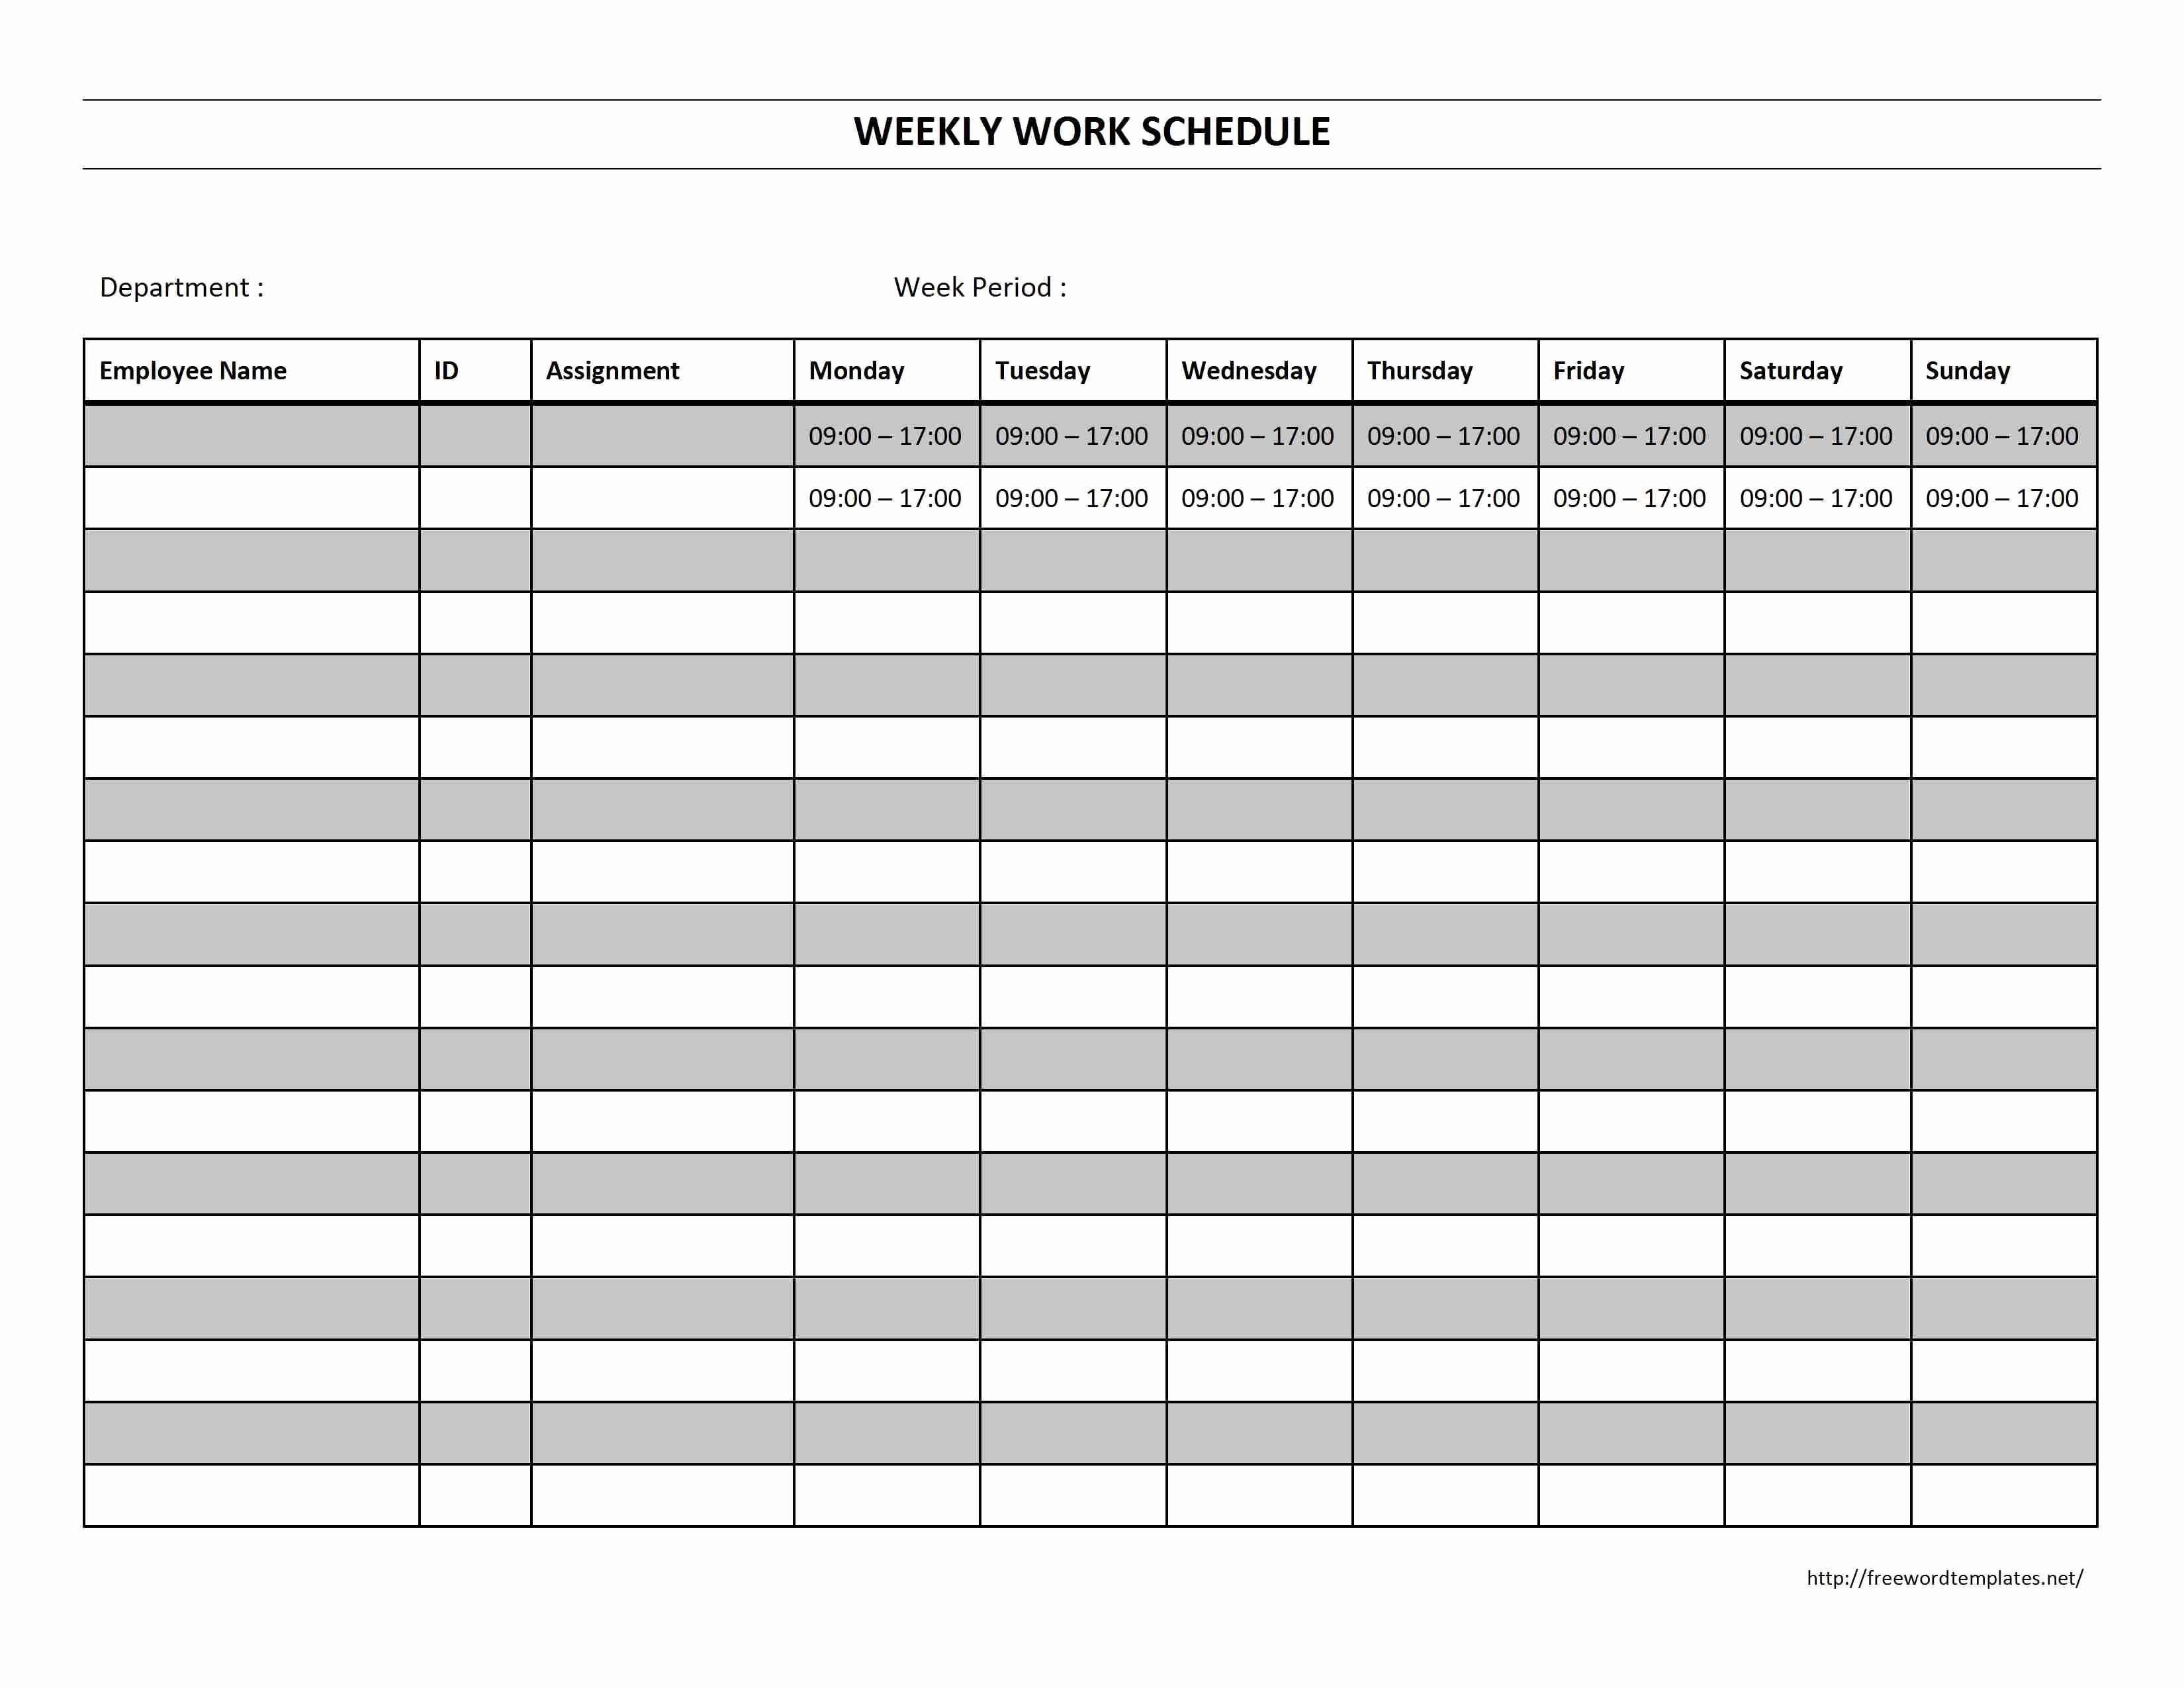 Work Schedule Template Weekly Awesome Weekly Work Schedule